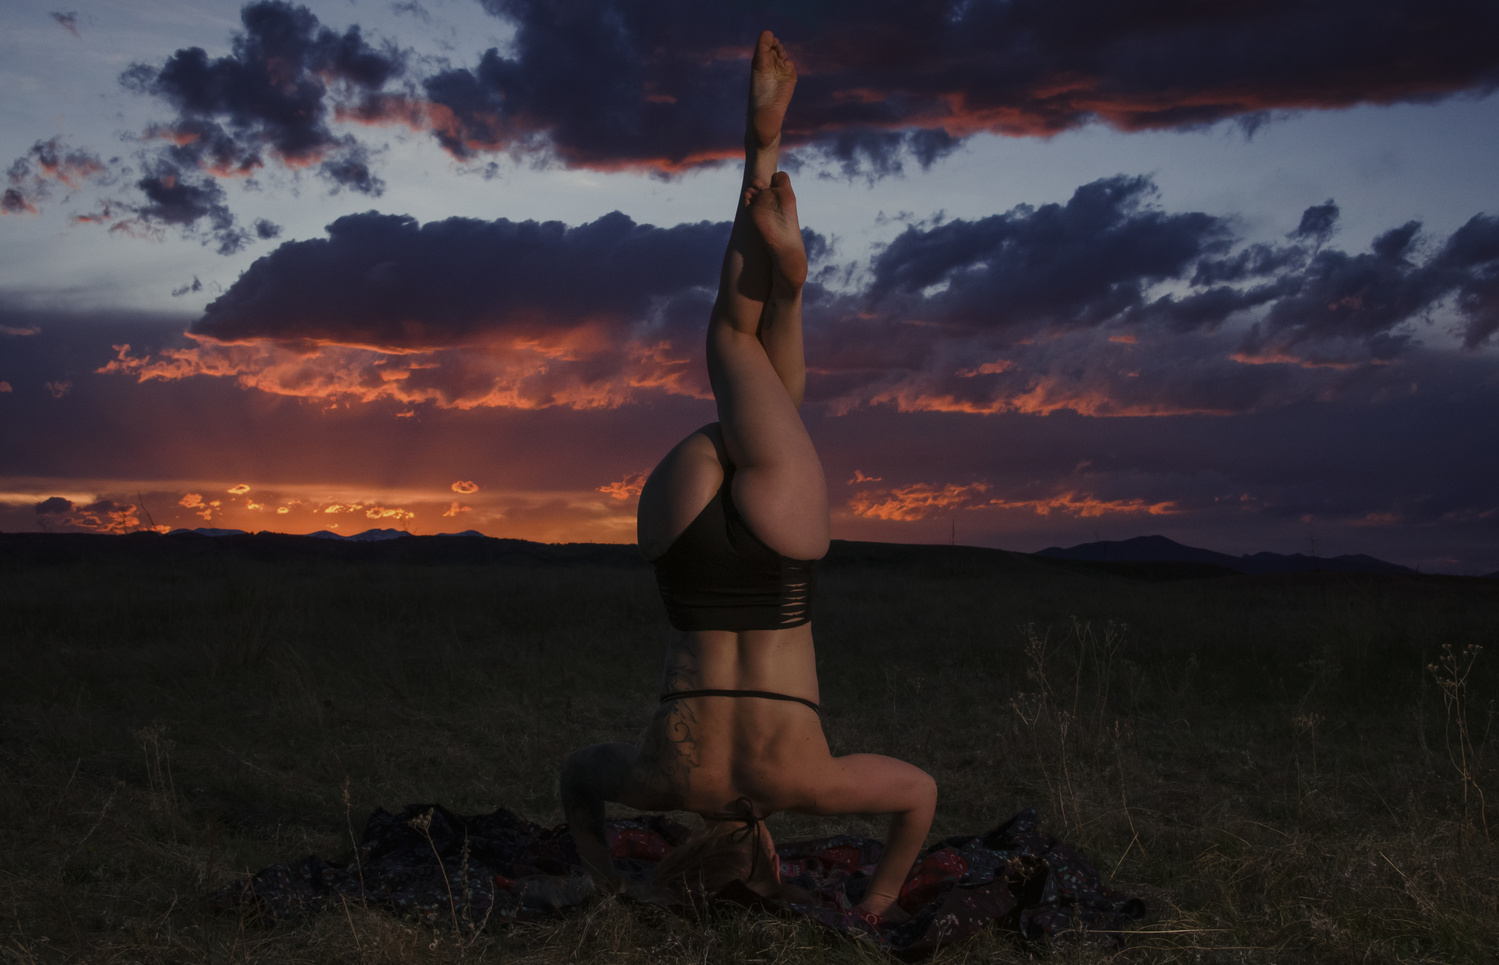 Magnificent Rocky Mountain Sunset & Yoga by Tony Ciccone